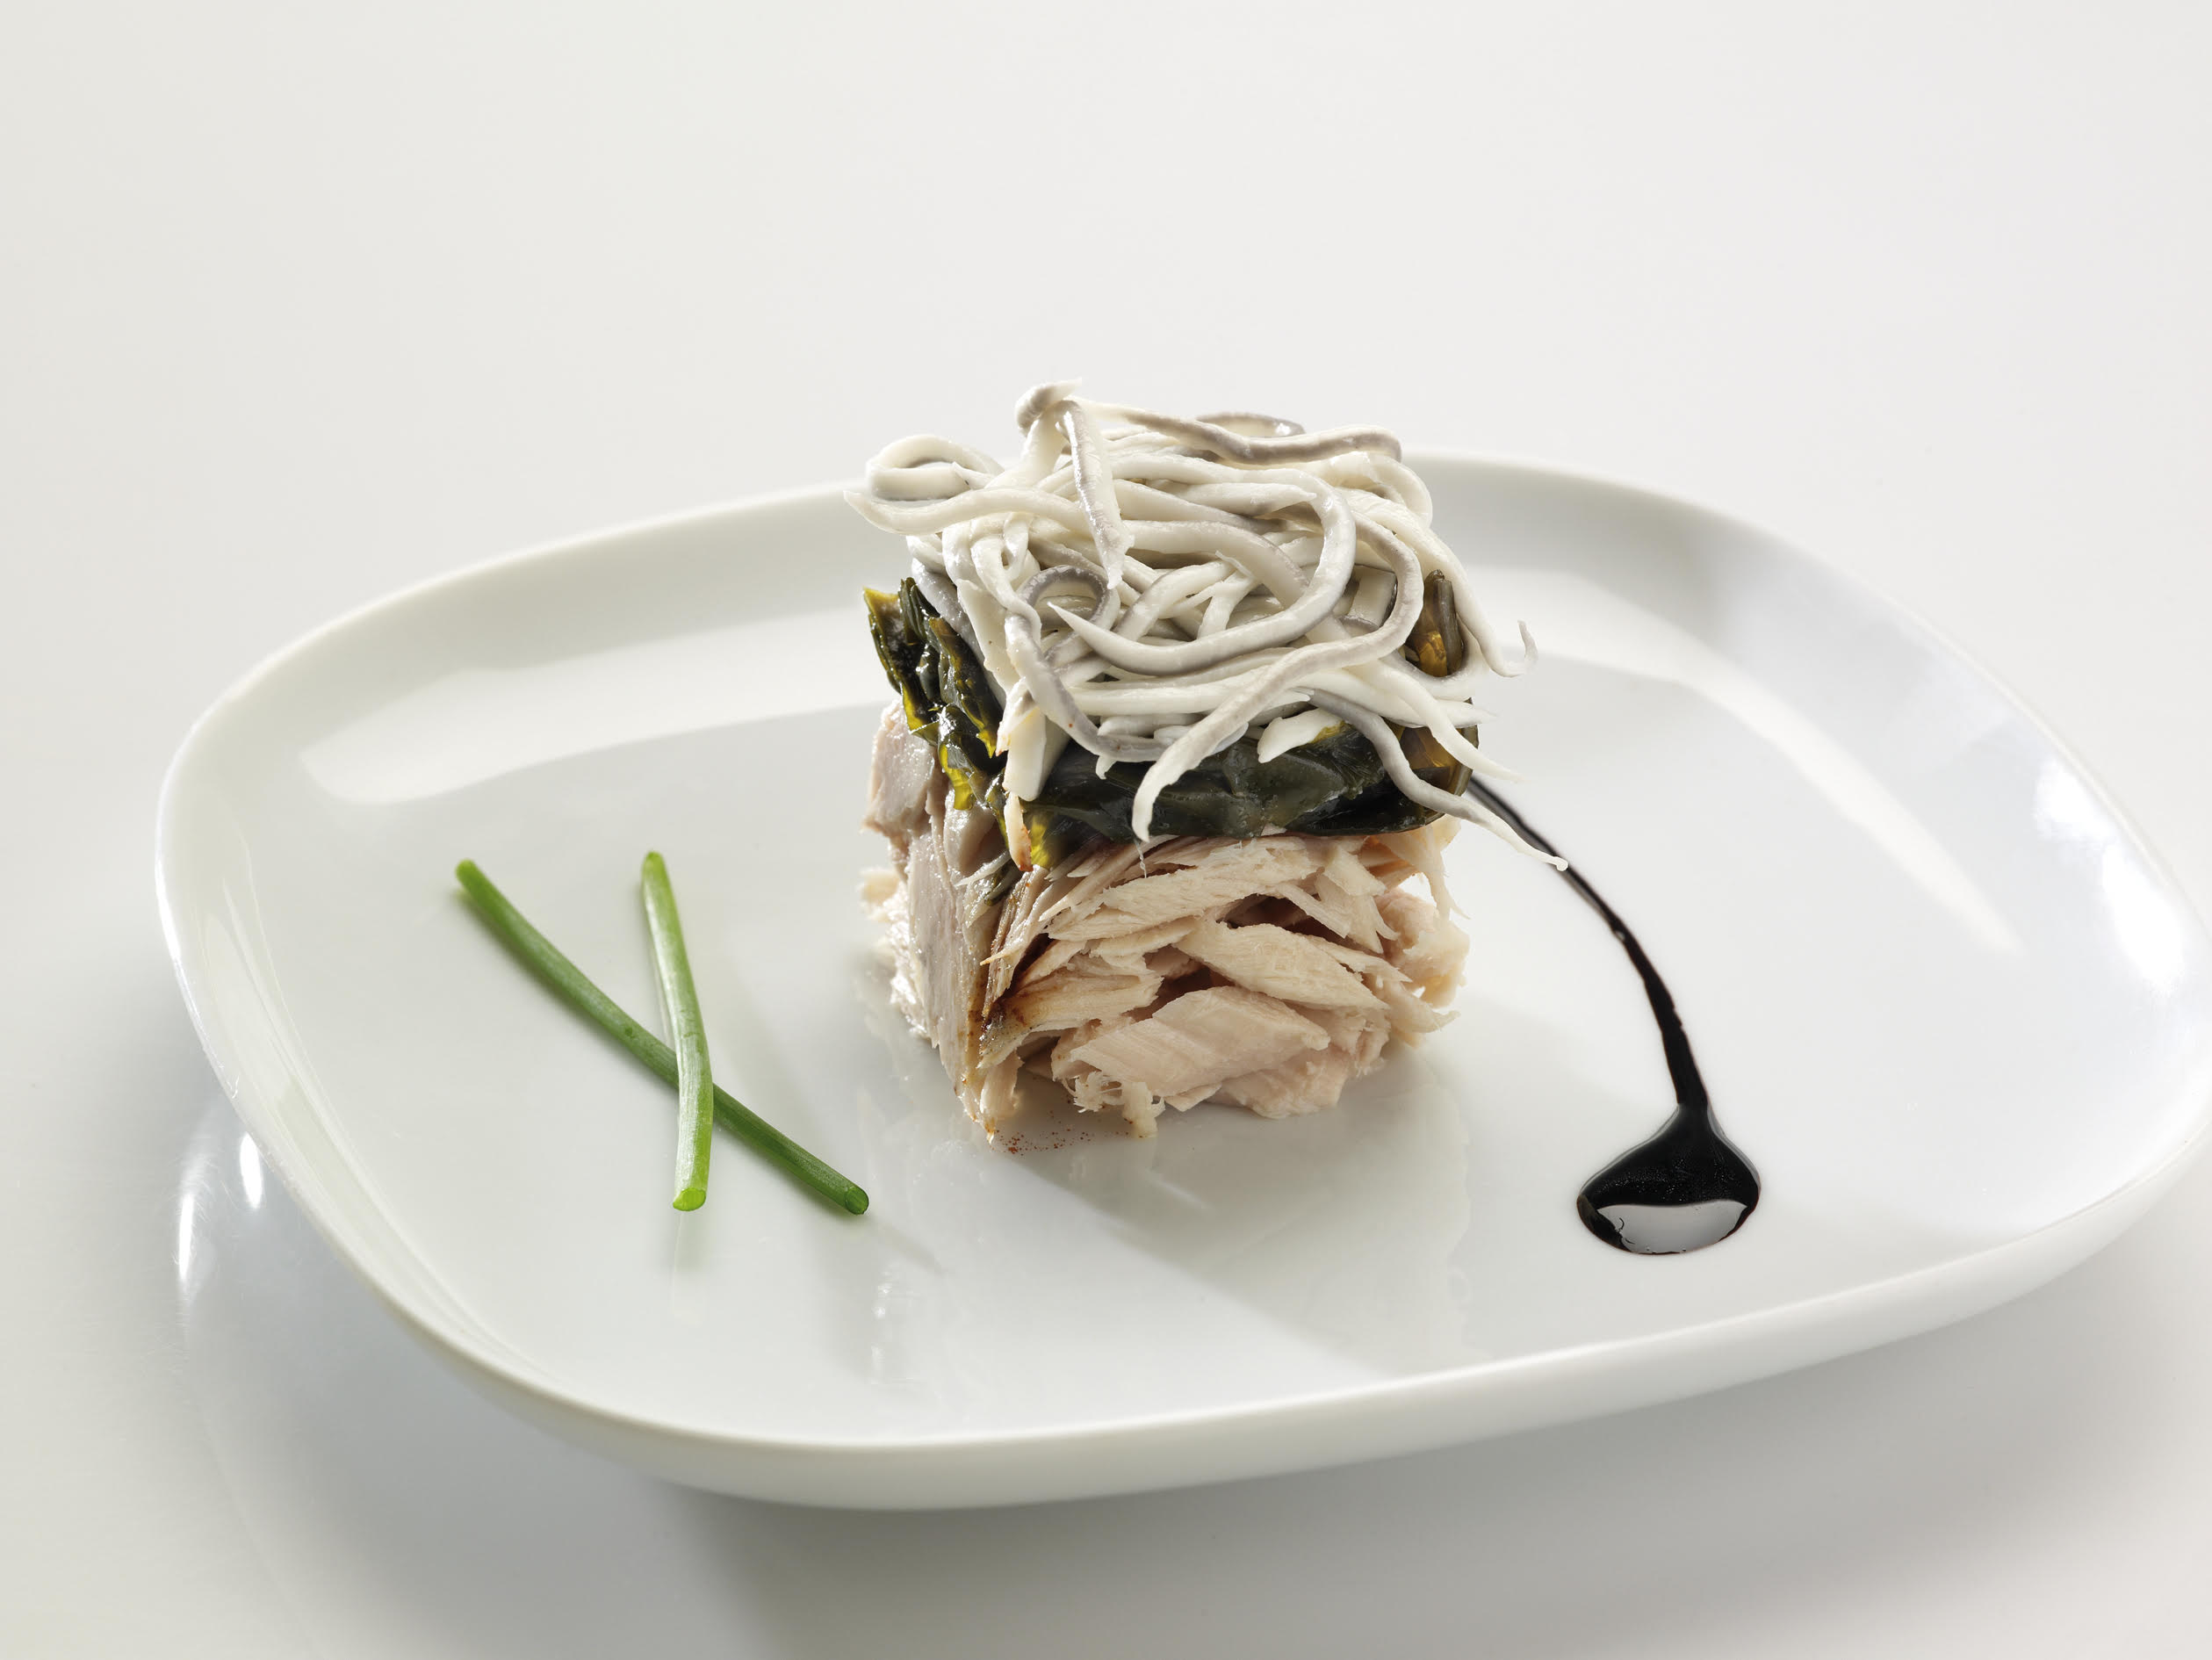 White tuna with seaweed and sautéed eels